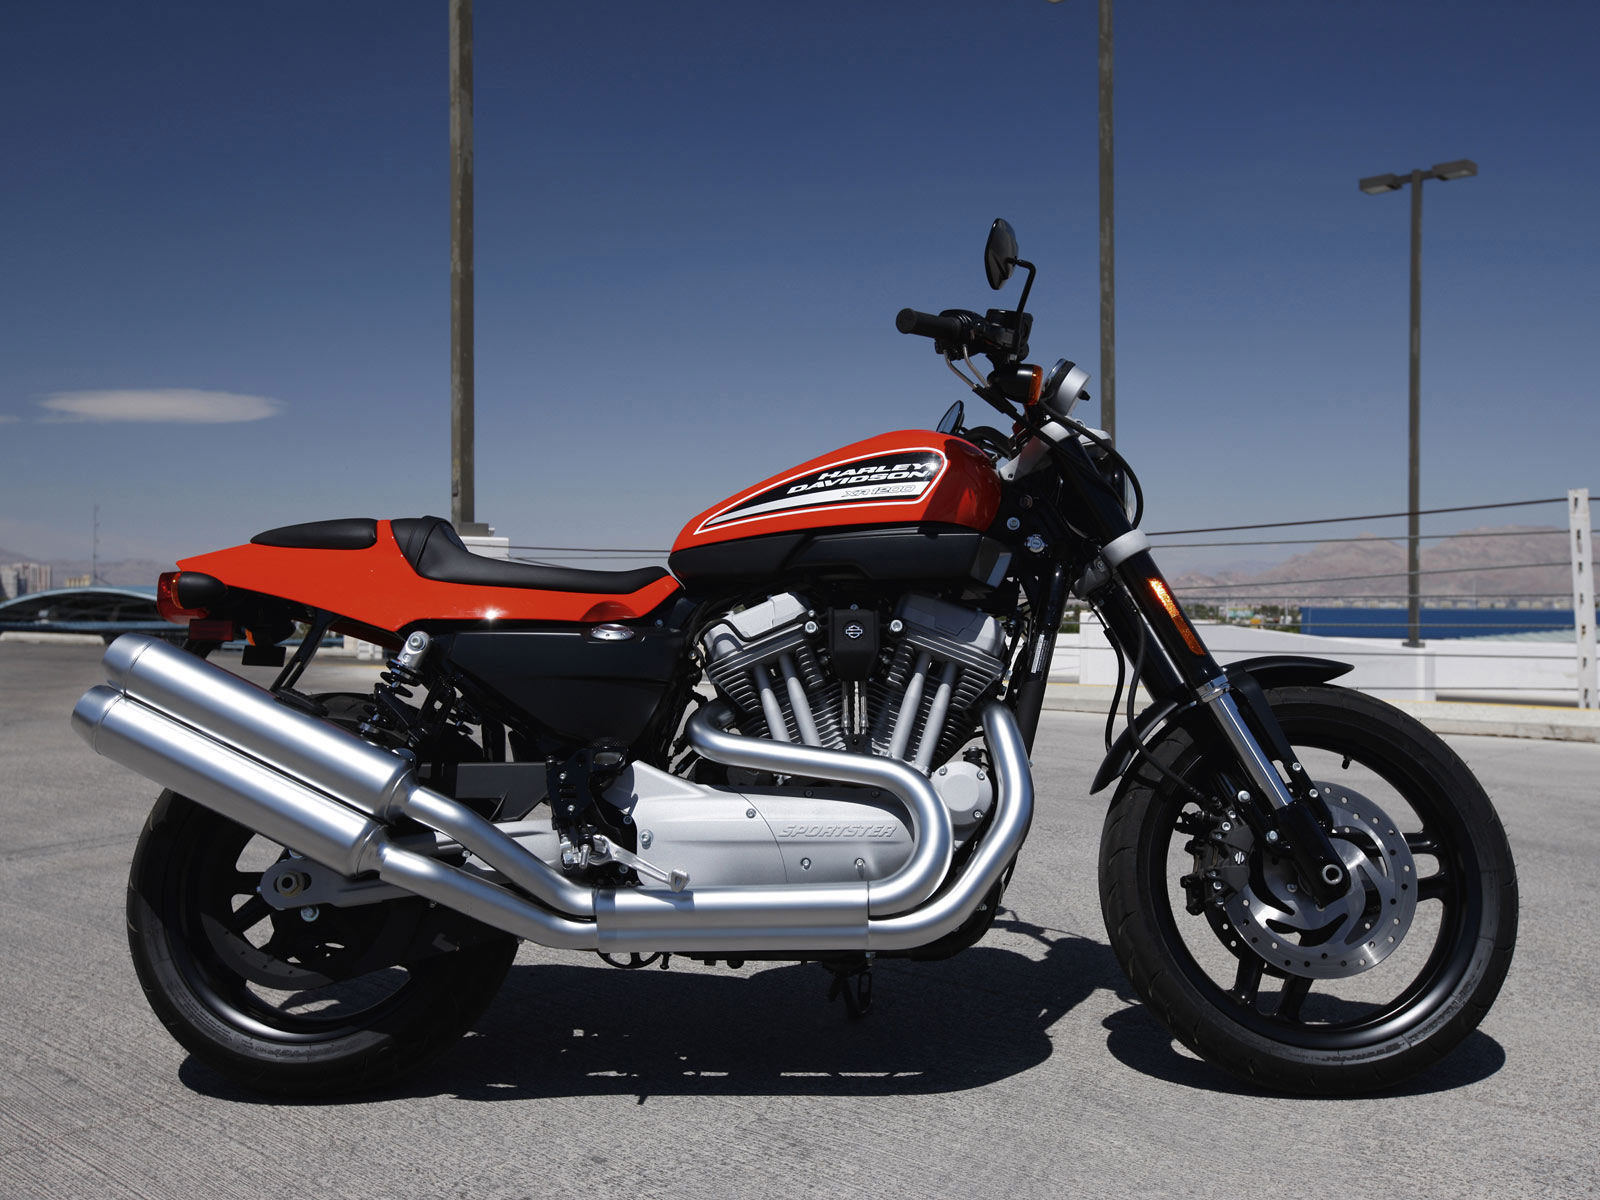 Harley Davidson: HARLEY-DAVIDSON XR1200 Motorcycle Review Wallpapers